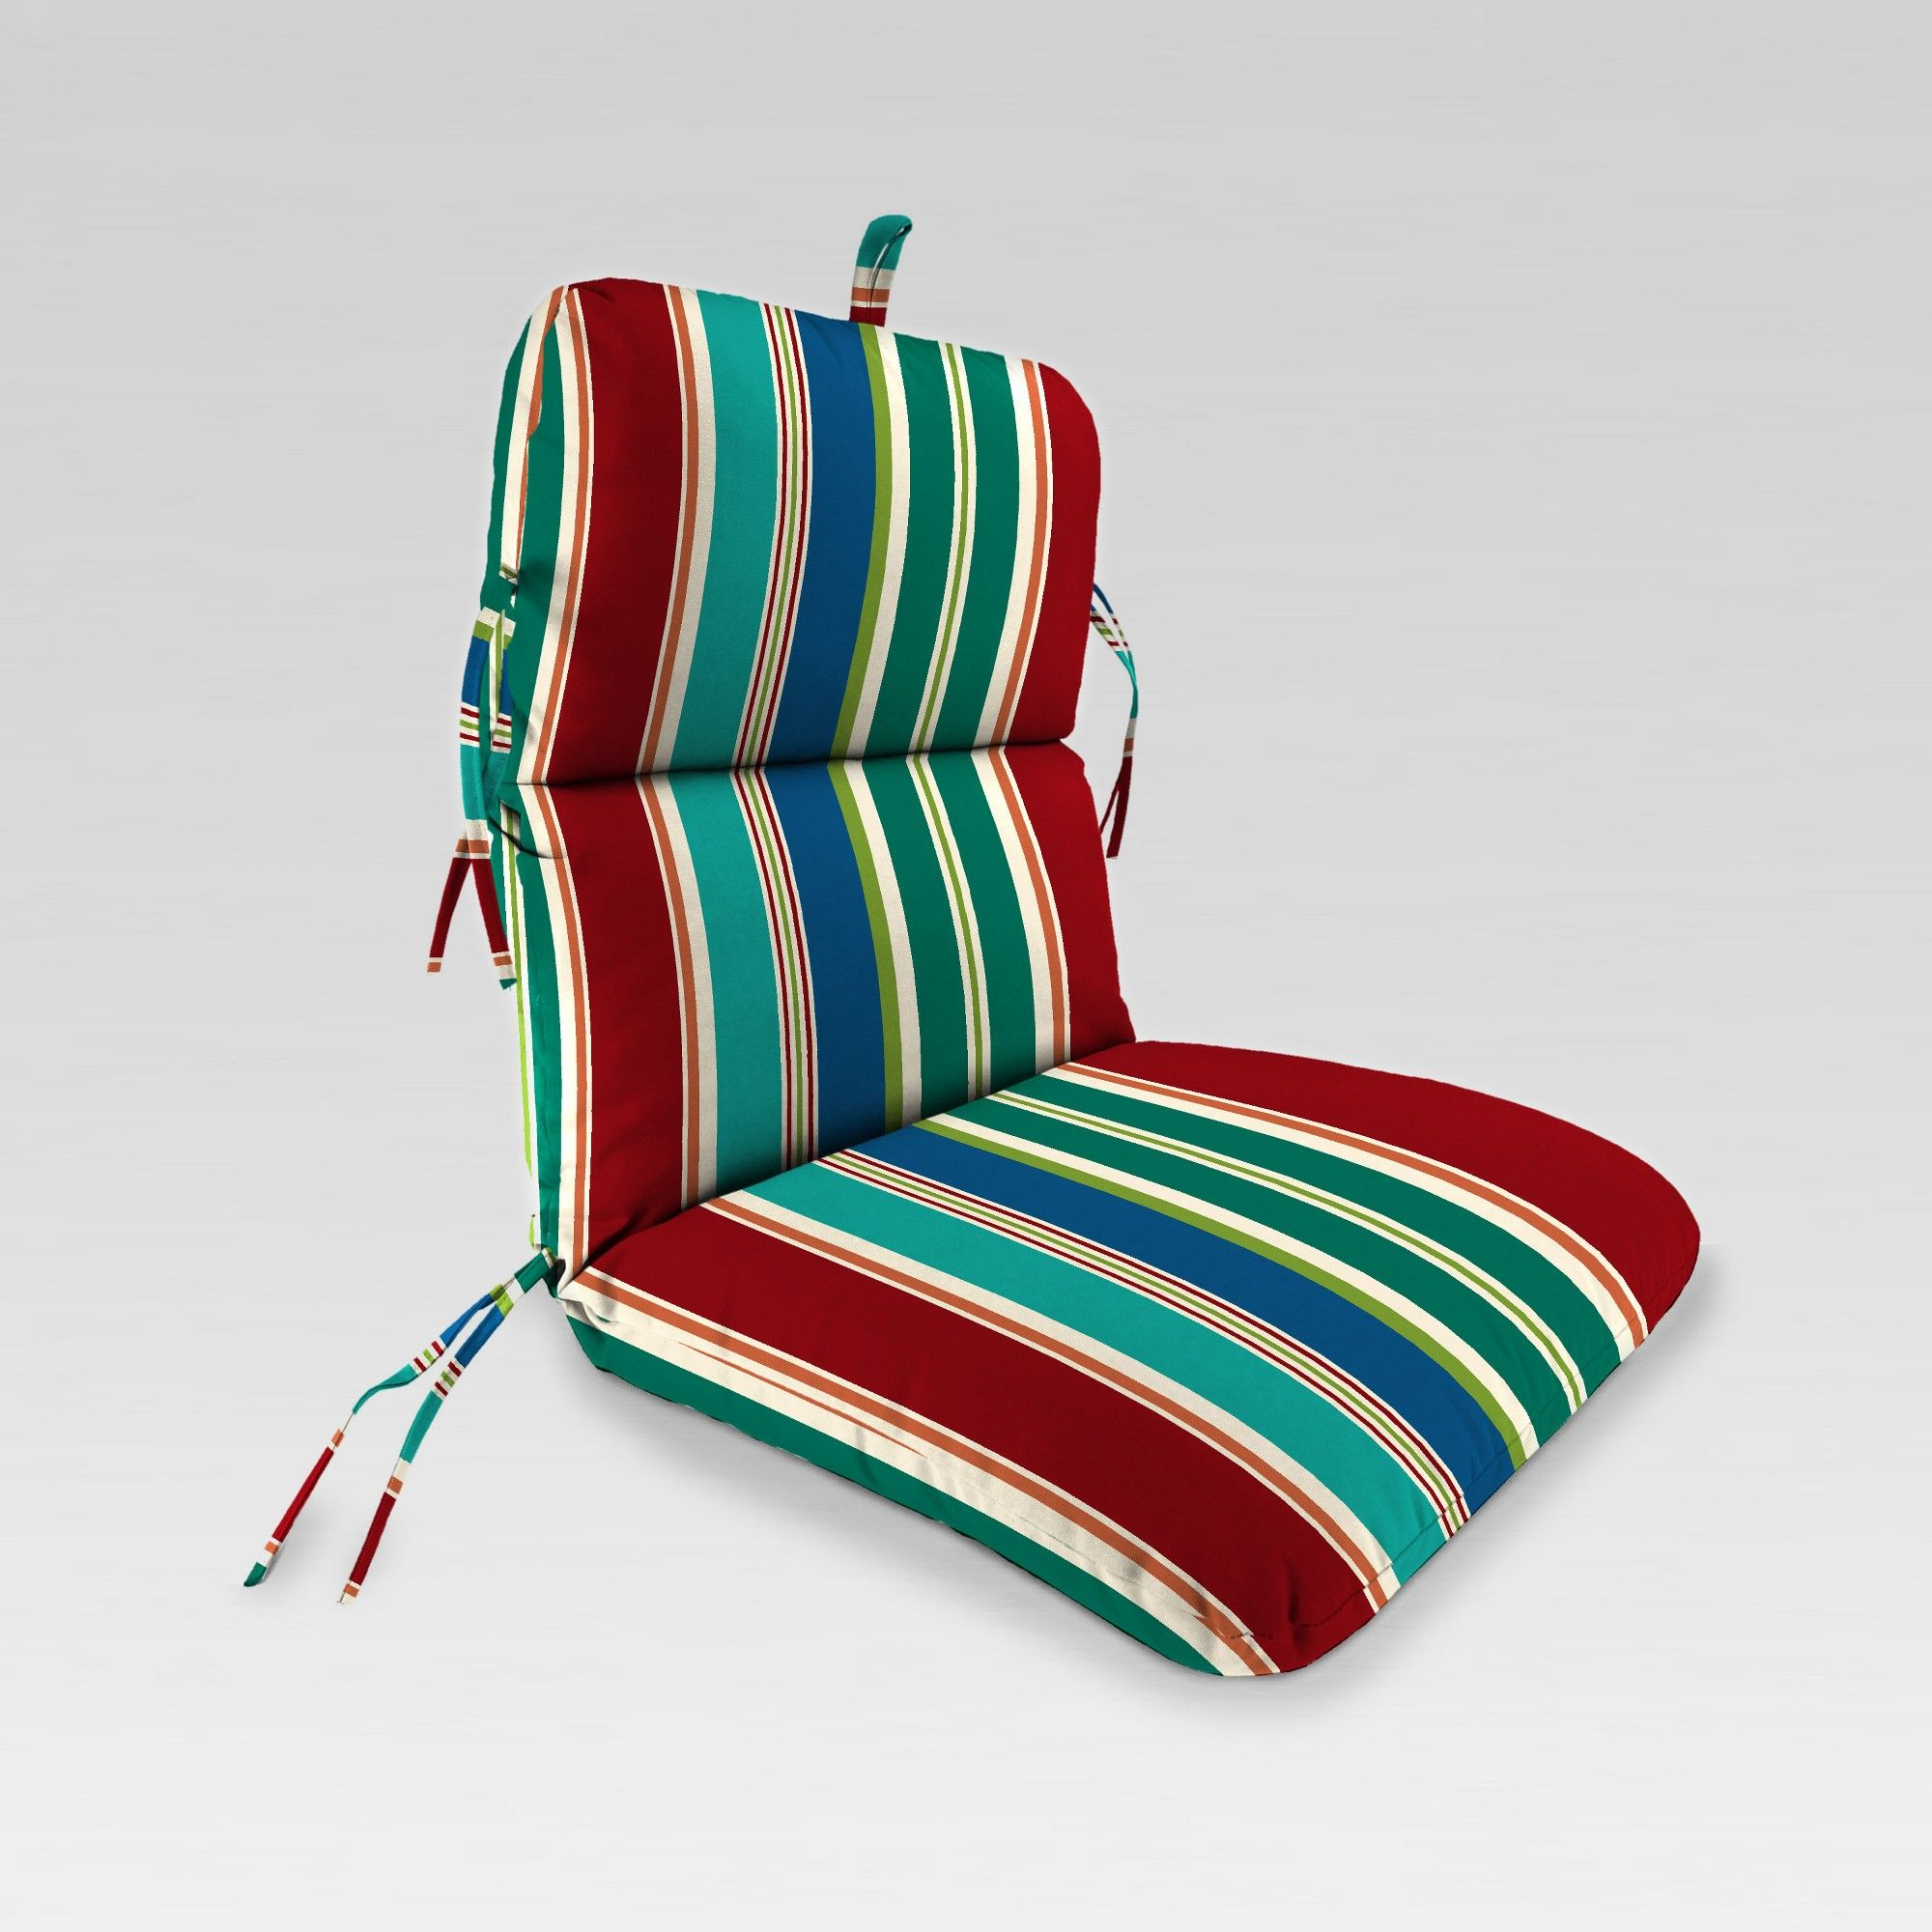 Outdoor Knife Edge Dining Chair Cushion Red/Blue/Green